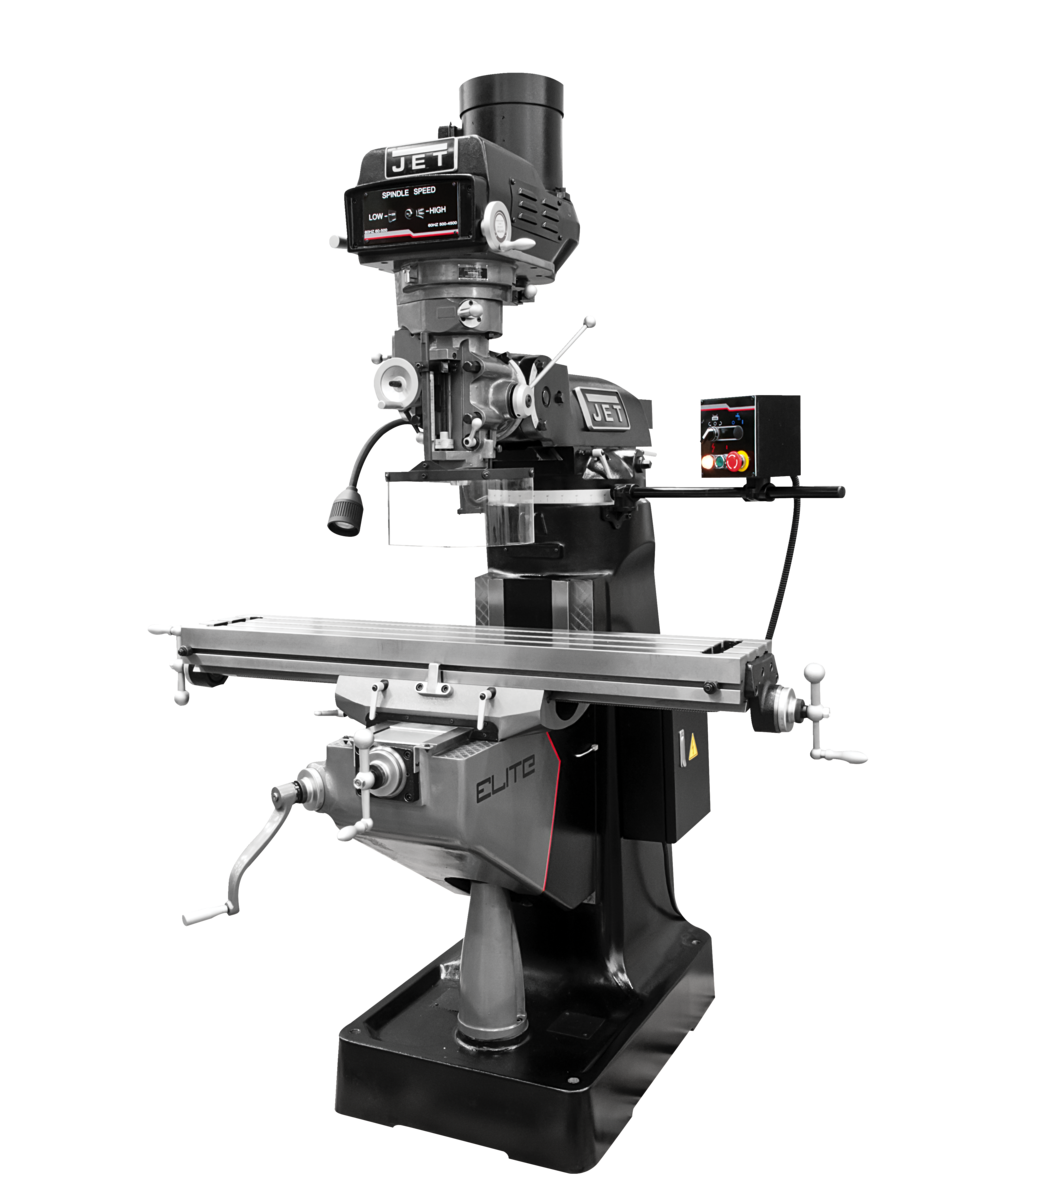 ETM-949 Mill with Y-Axis JET Powerfeed